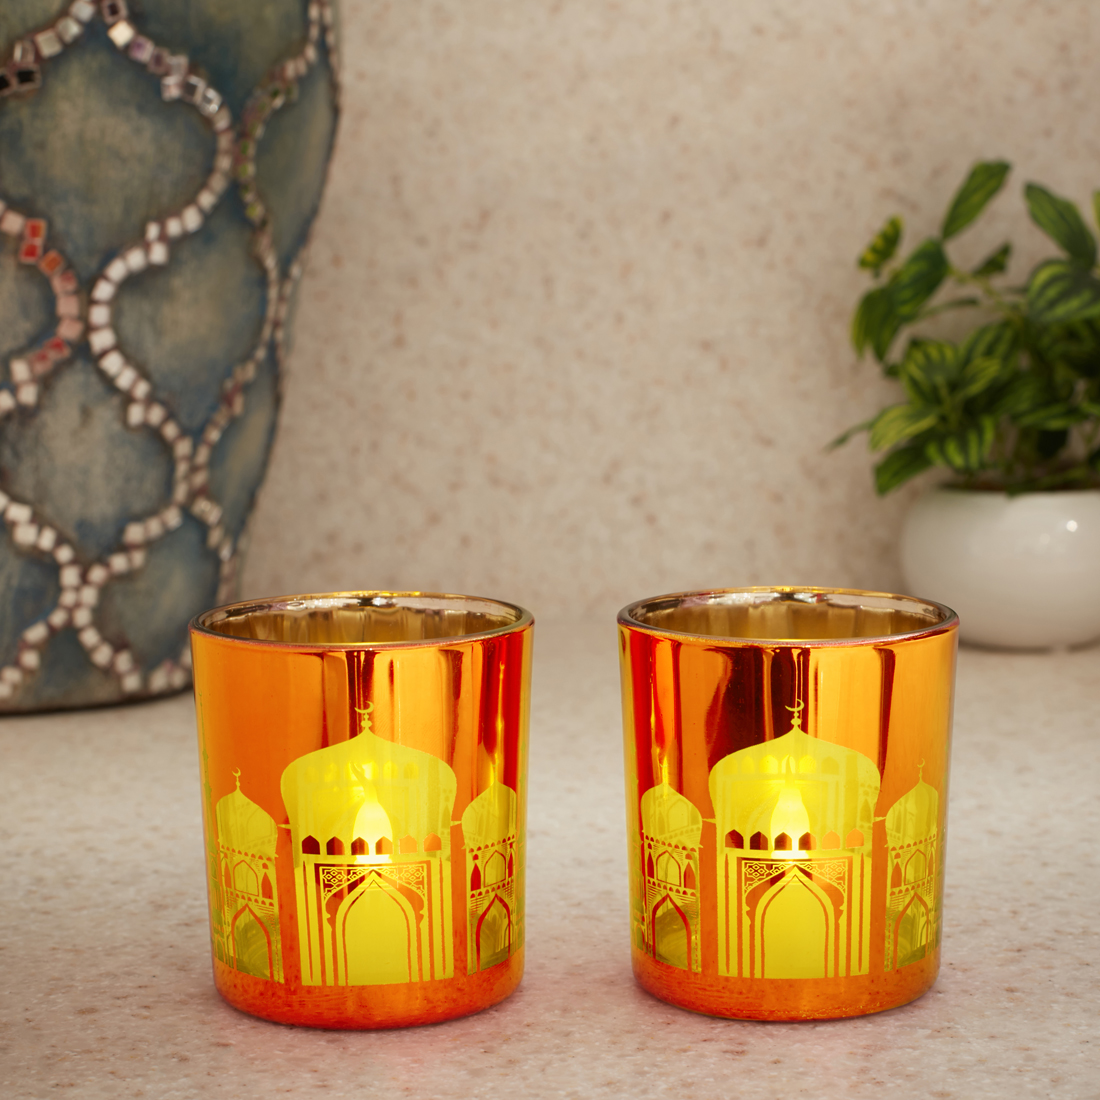 Zahara Set Of 2 Temple Etched Glass Candle Holders in ORANGE Colour by Living Essence